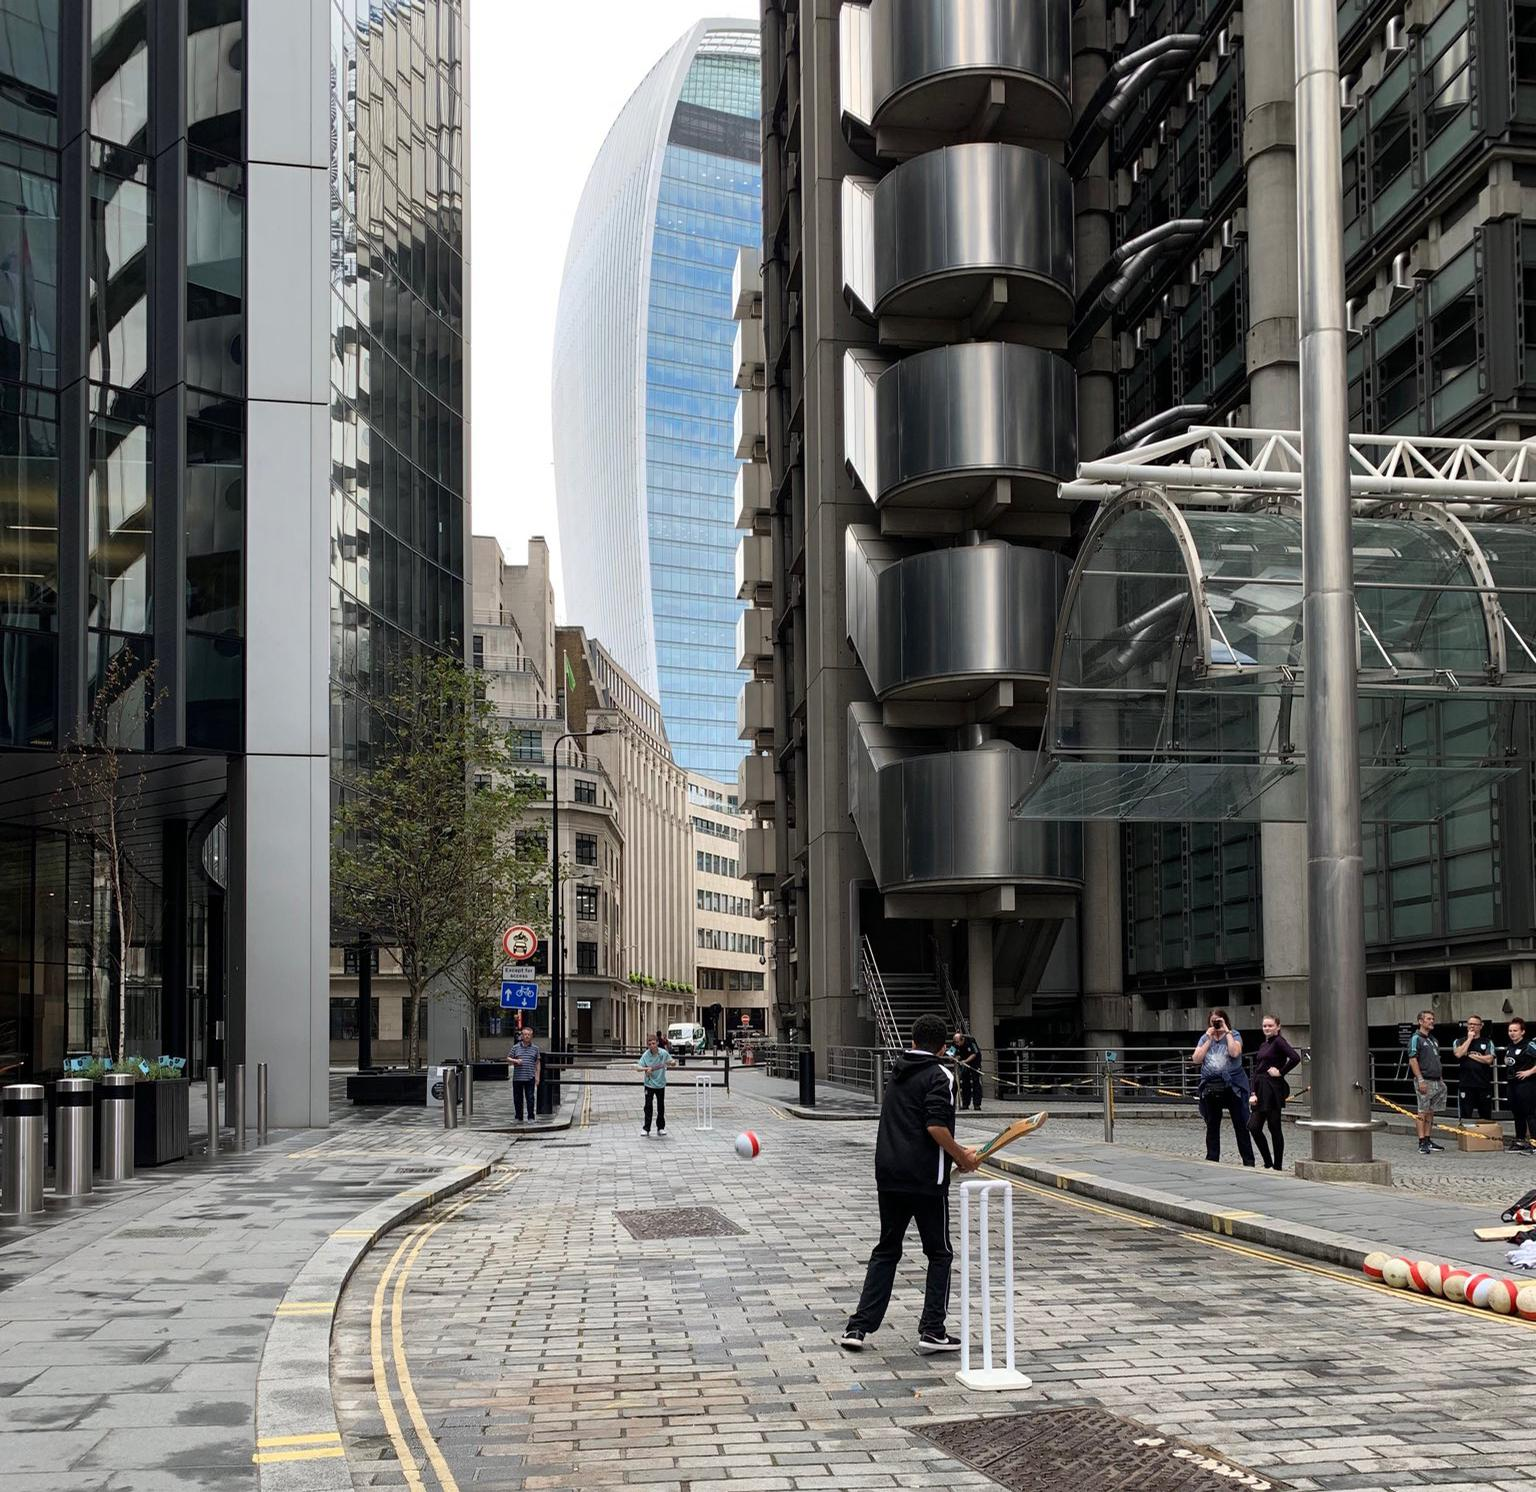 Children took the opportunity to play street cricket in the shadow of the 20 Fenchurch Street 'Walkie-Talkie' skyscraper / Twitter: @martinsymcox